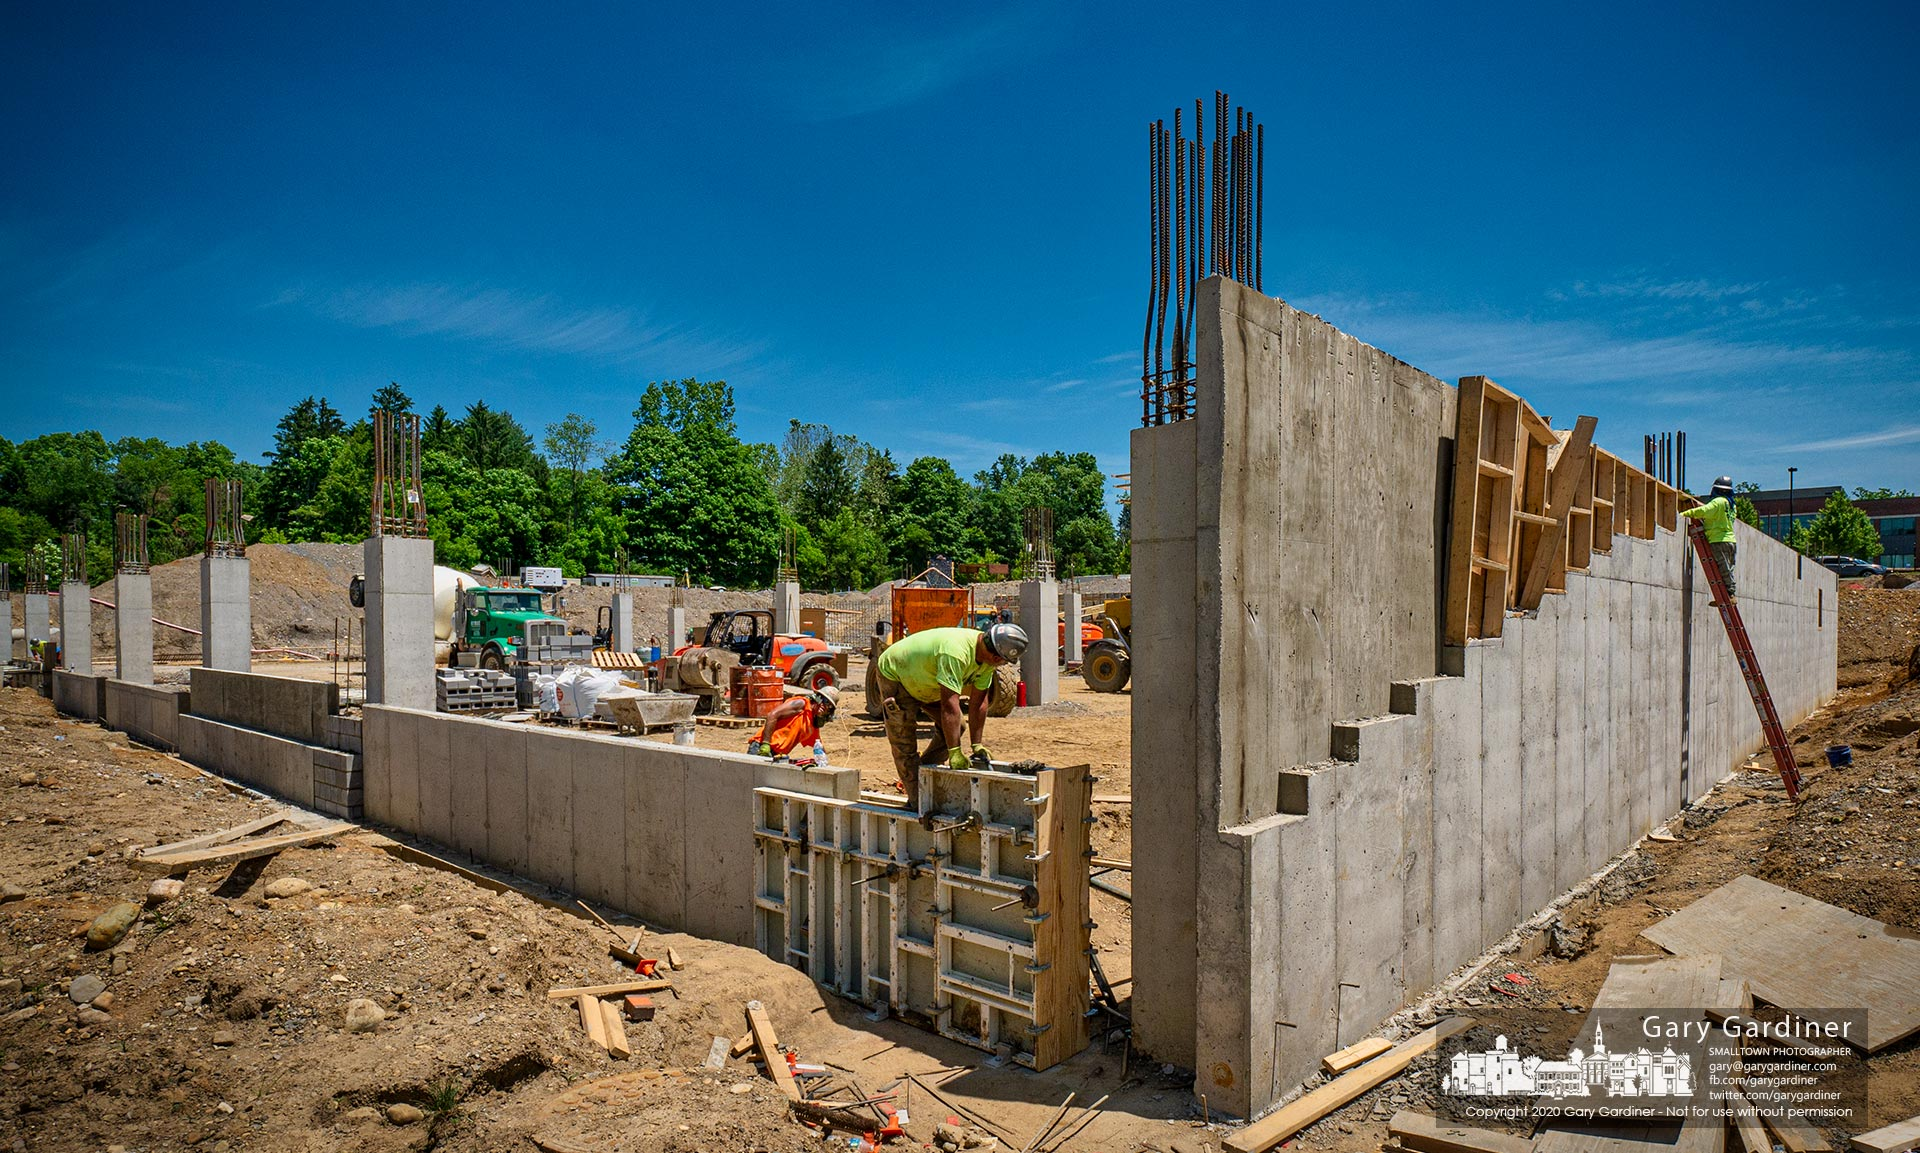 Workers erect formed concrete walls of the first-floor parking garage for the new COPC care center being built adjacent to its two existing building off Africa Road. My Final Photo for June 9, 2020.